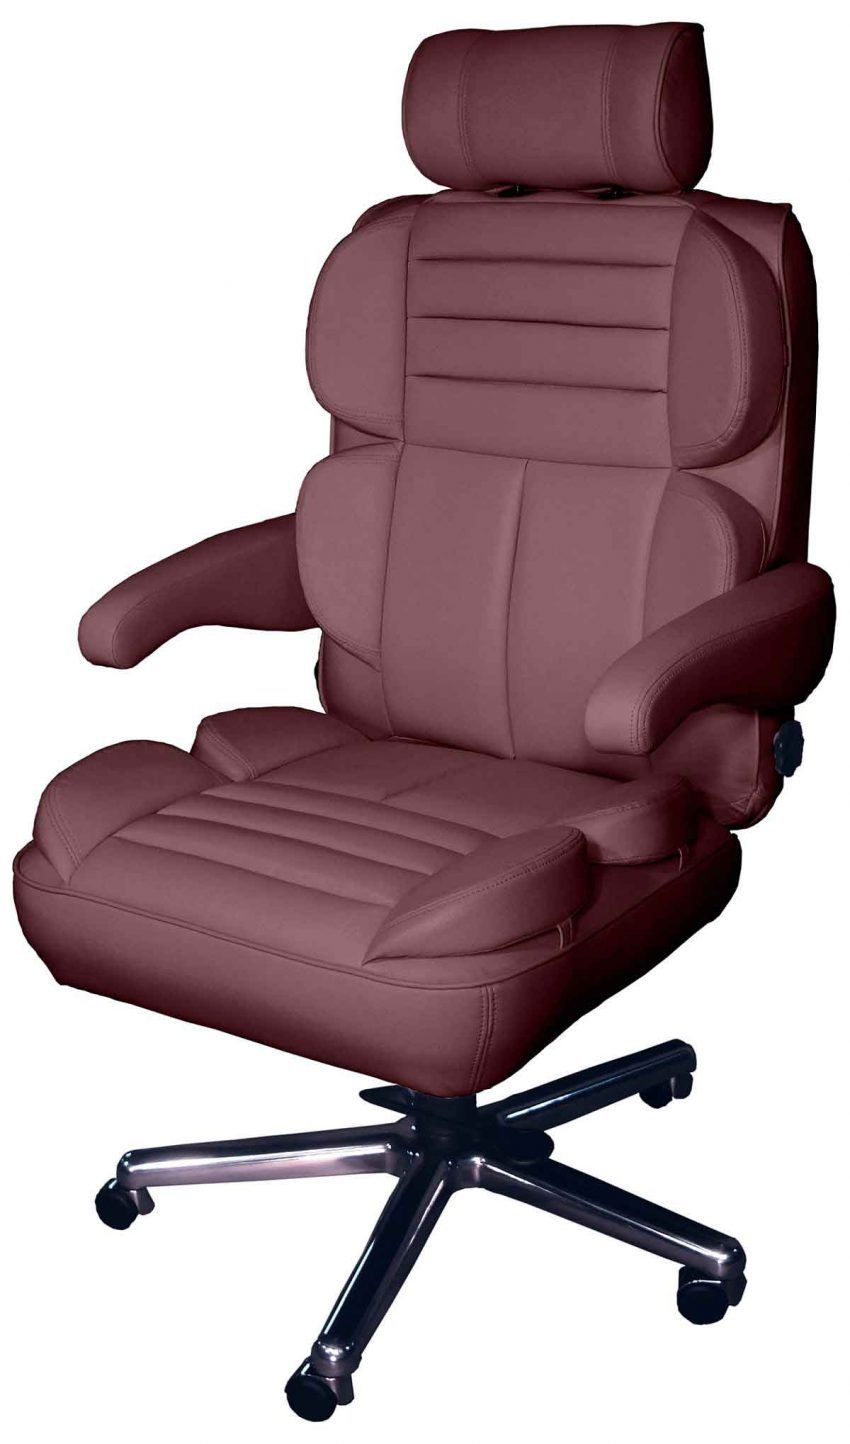 Leather Office Chair Arm Covers